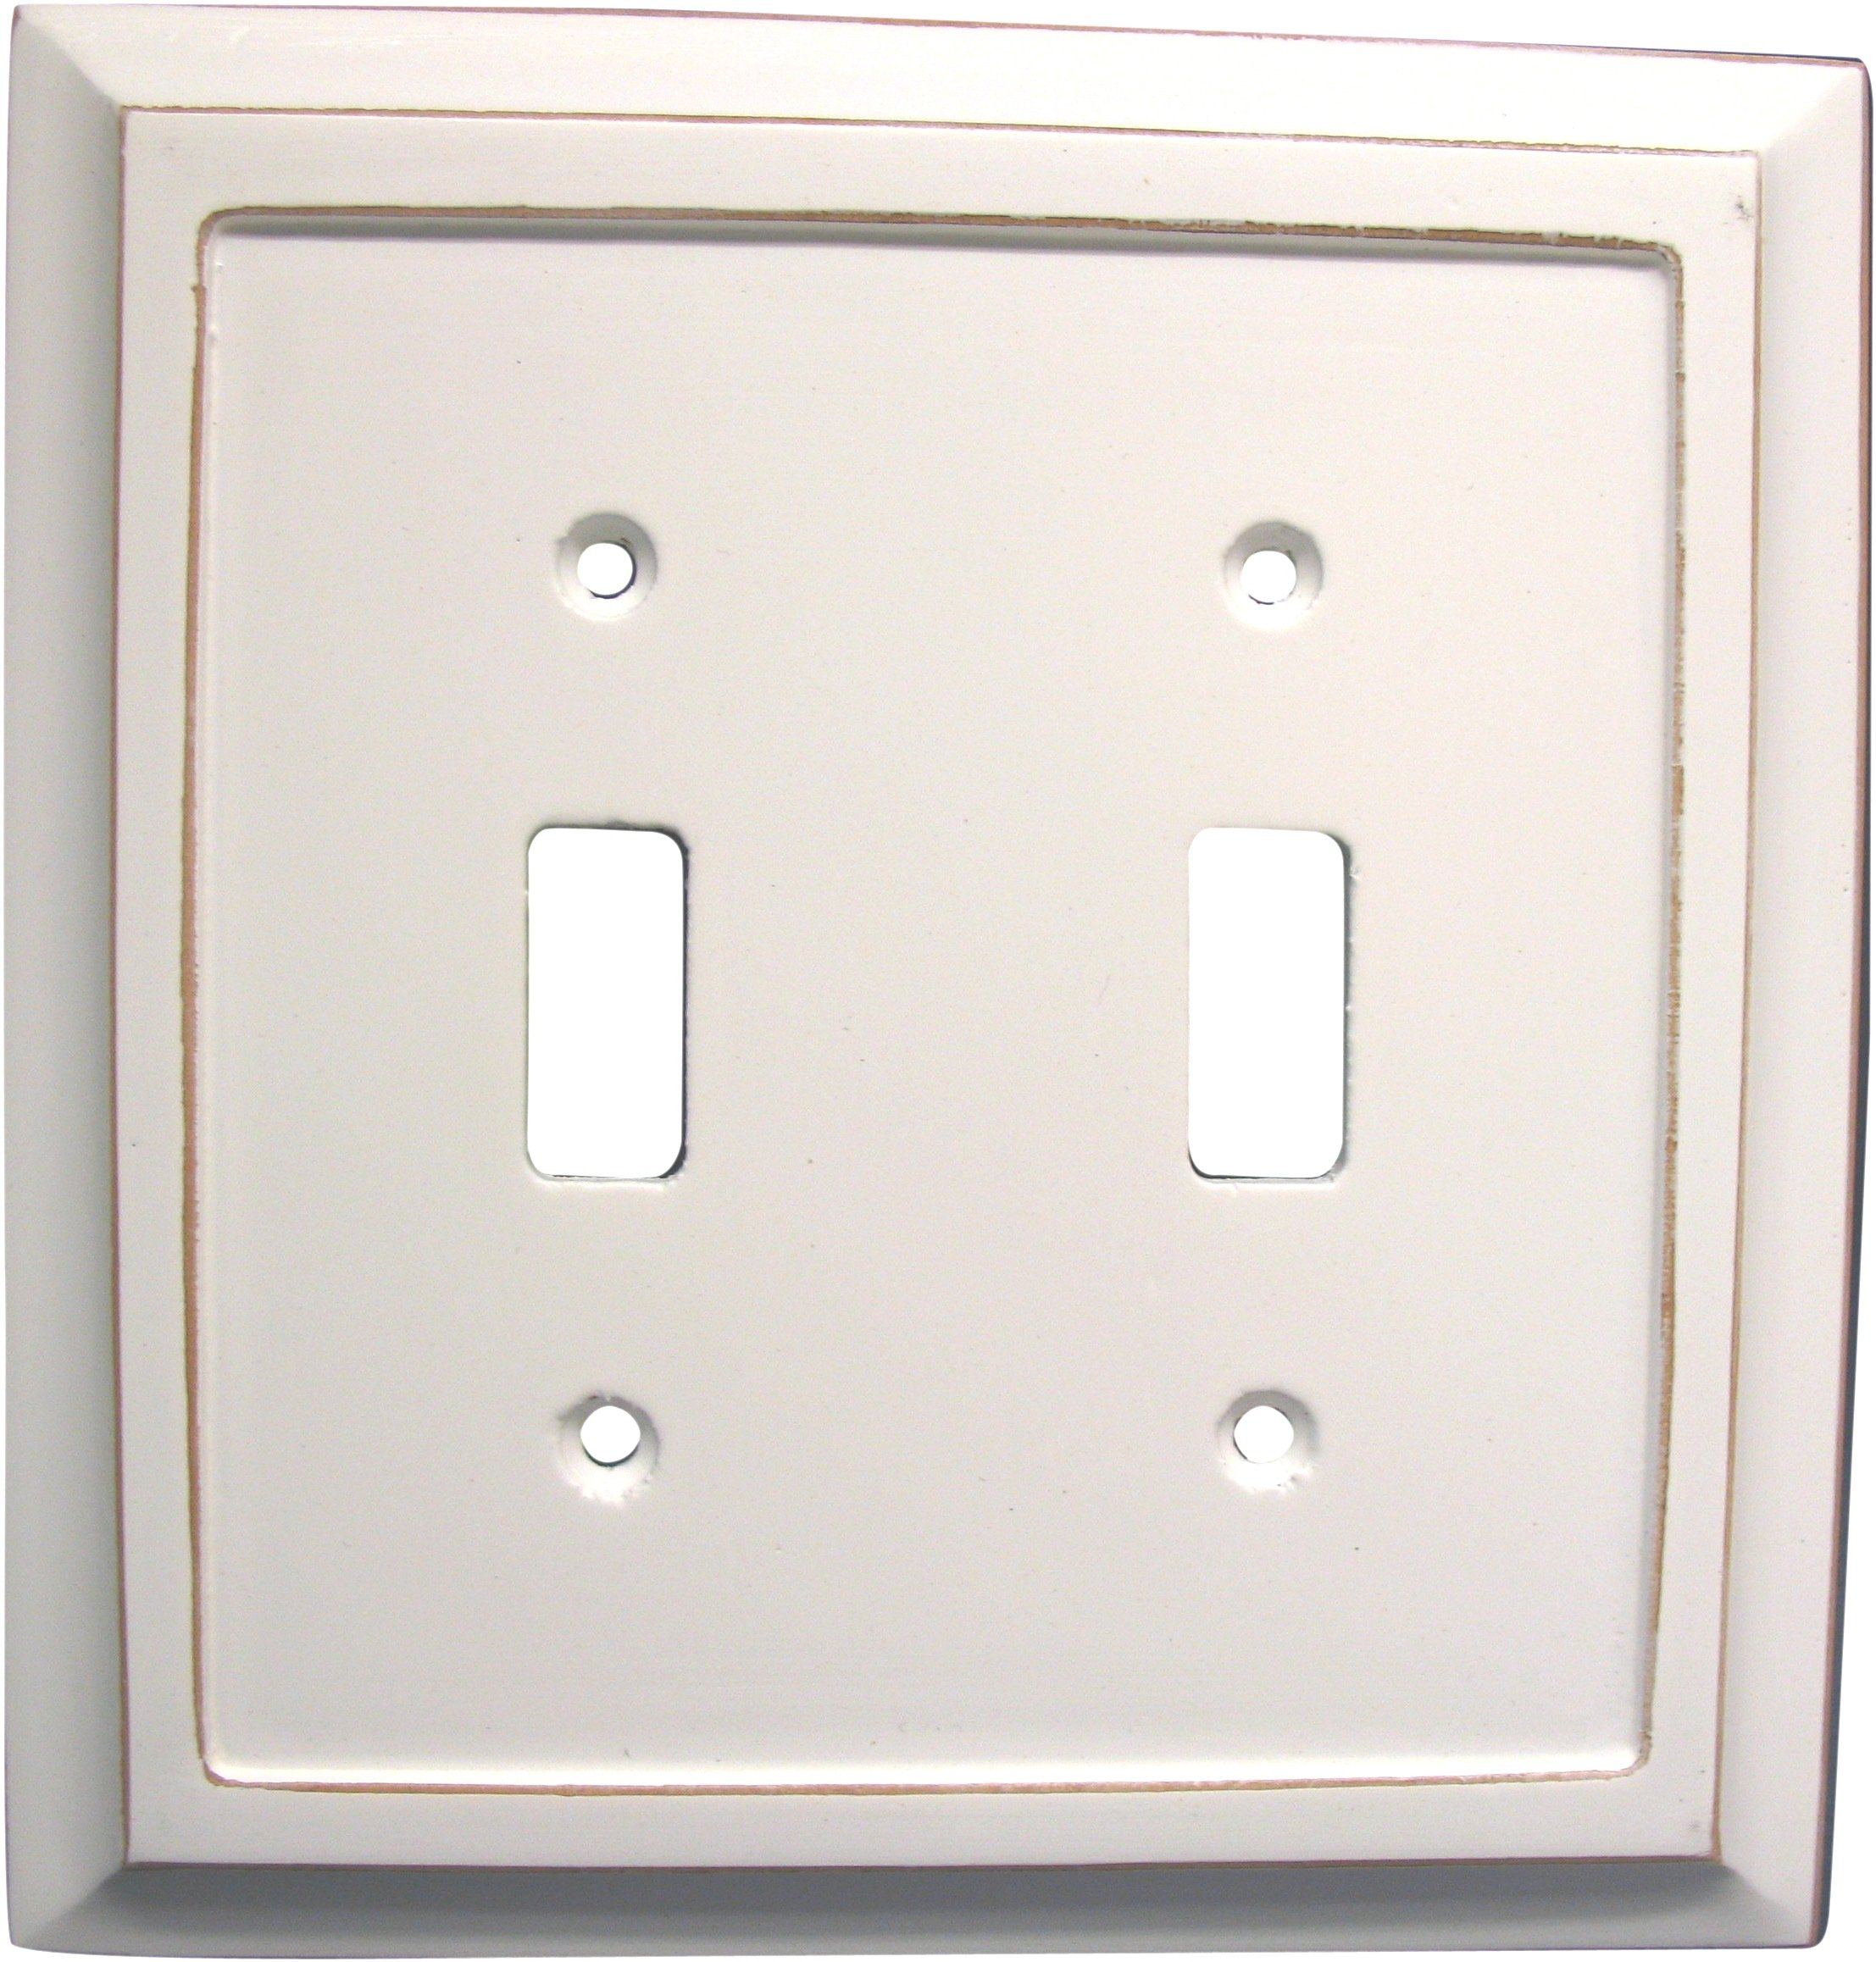 AmerTac 4040TTDW 2 Toggle Savannah Wood Wallplate, Distressed White